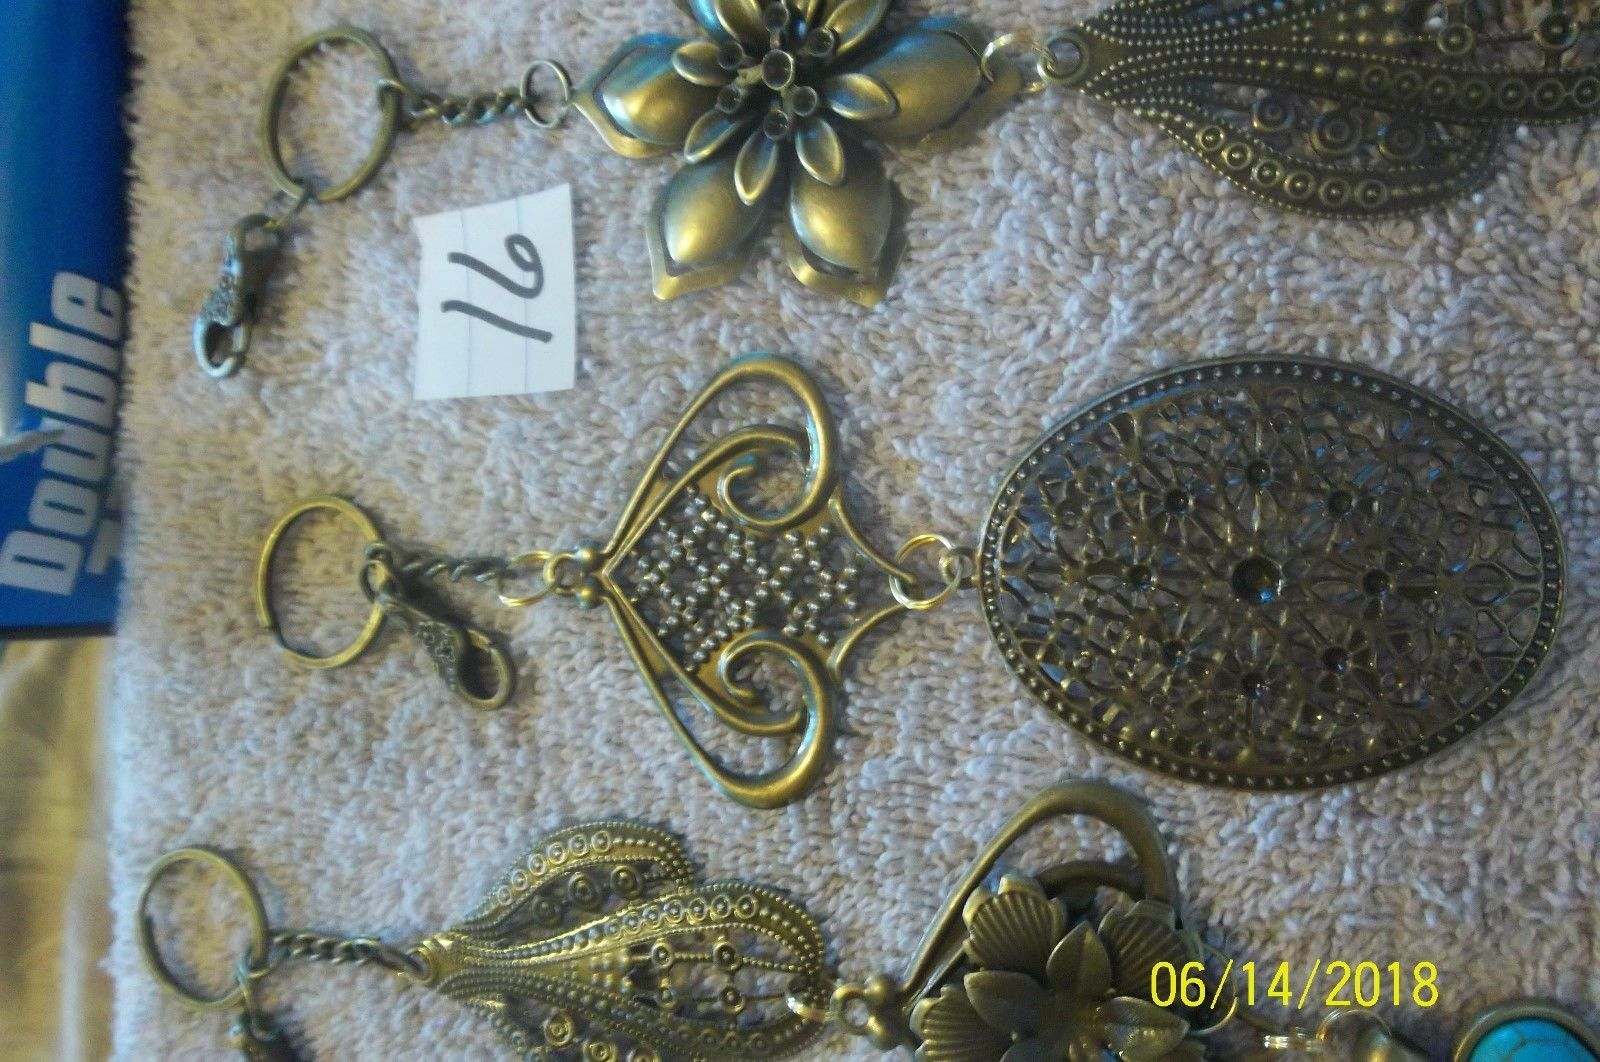 # purse jewelry bronze color keychain backpack  dangle charms #16 lot of 3 image 4